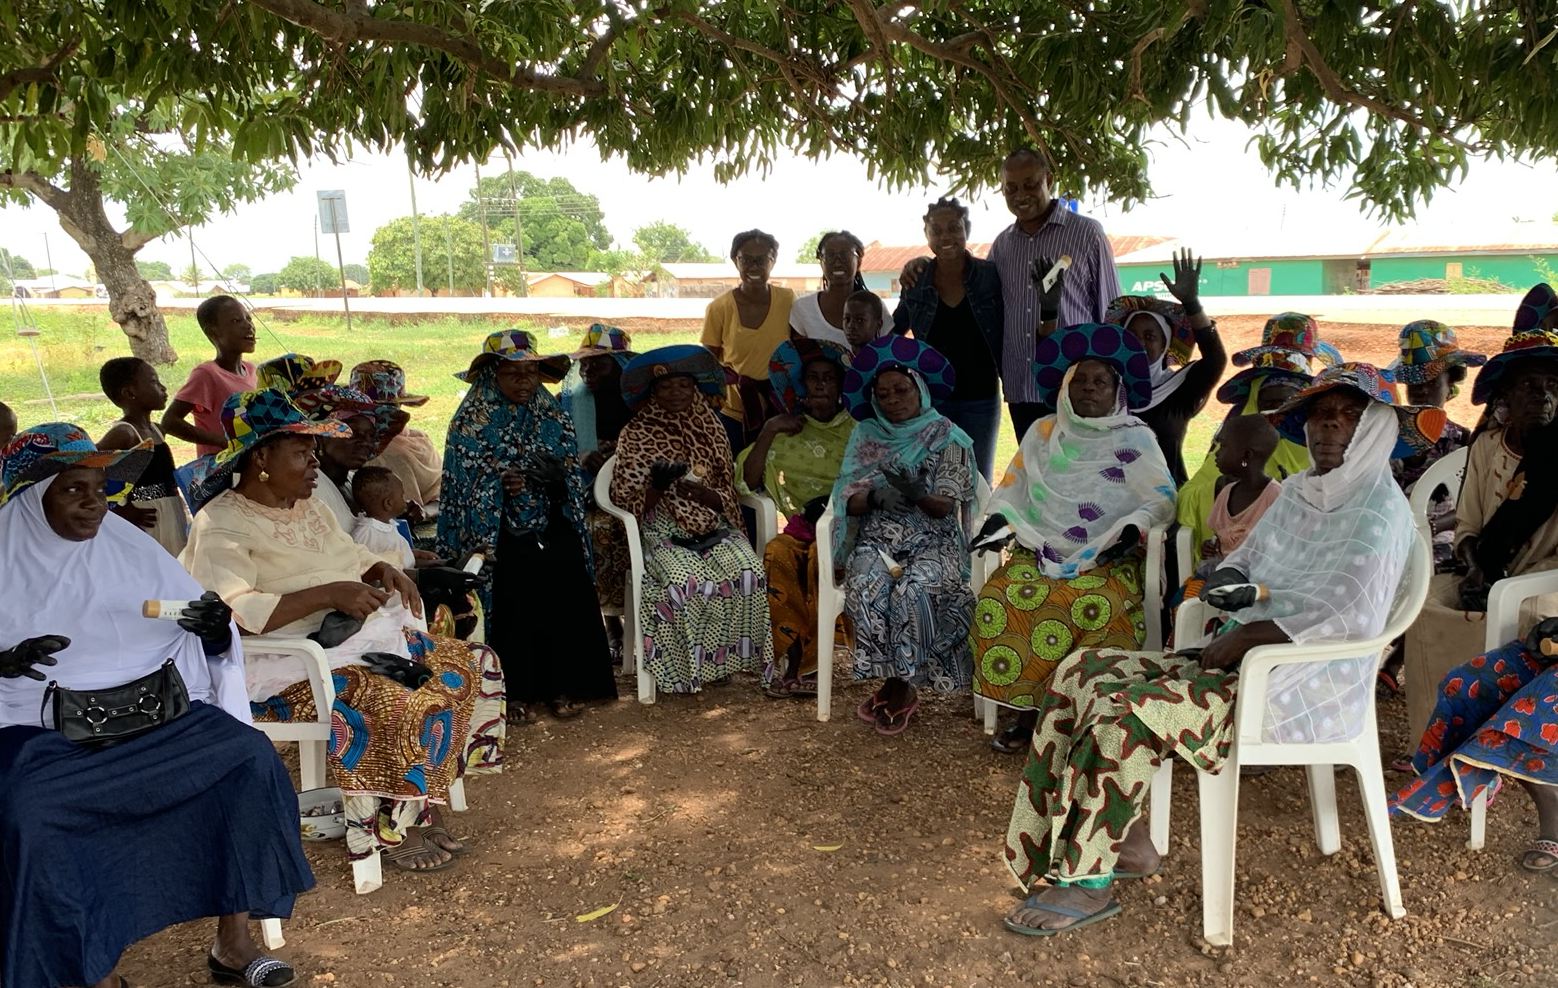 The founders of Karité with workers from women-run shea tree cooperatives in northern Ghana gather for a picture